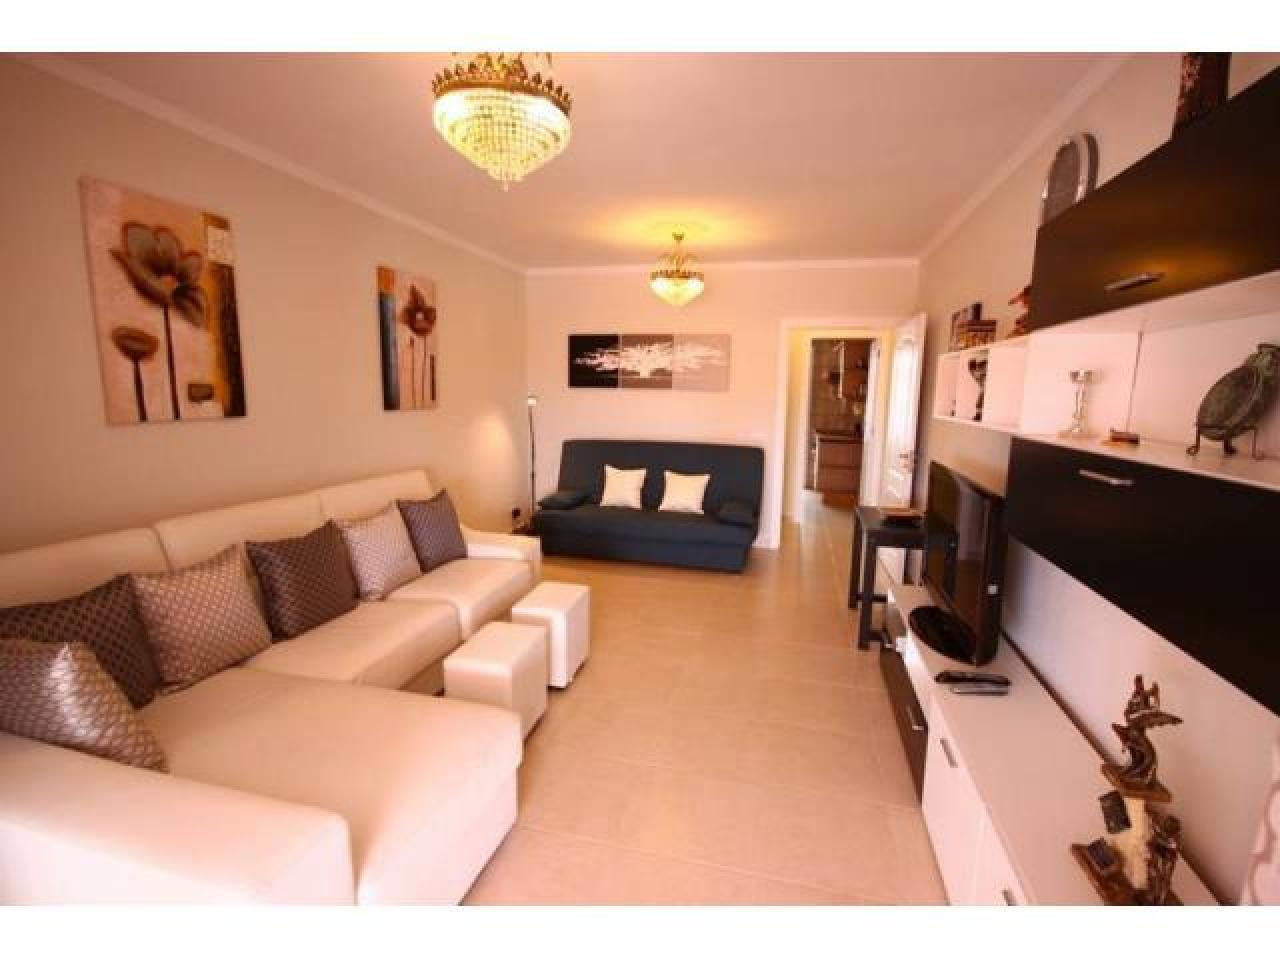 Apartment in Tenerife for rent - 4